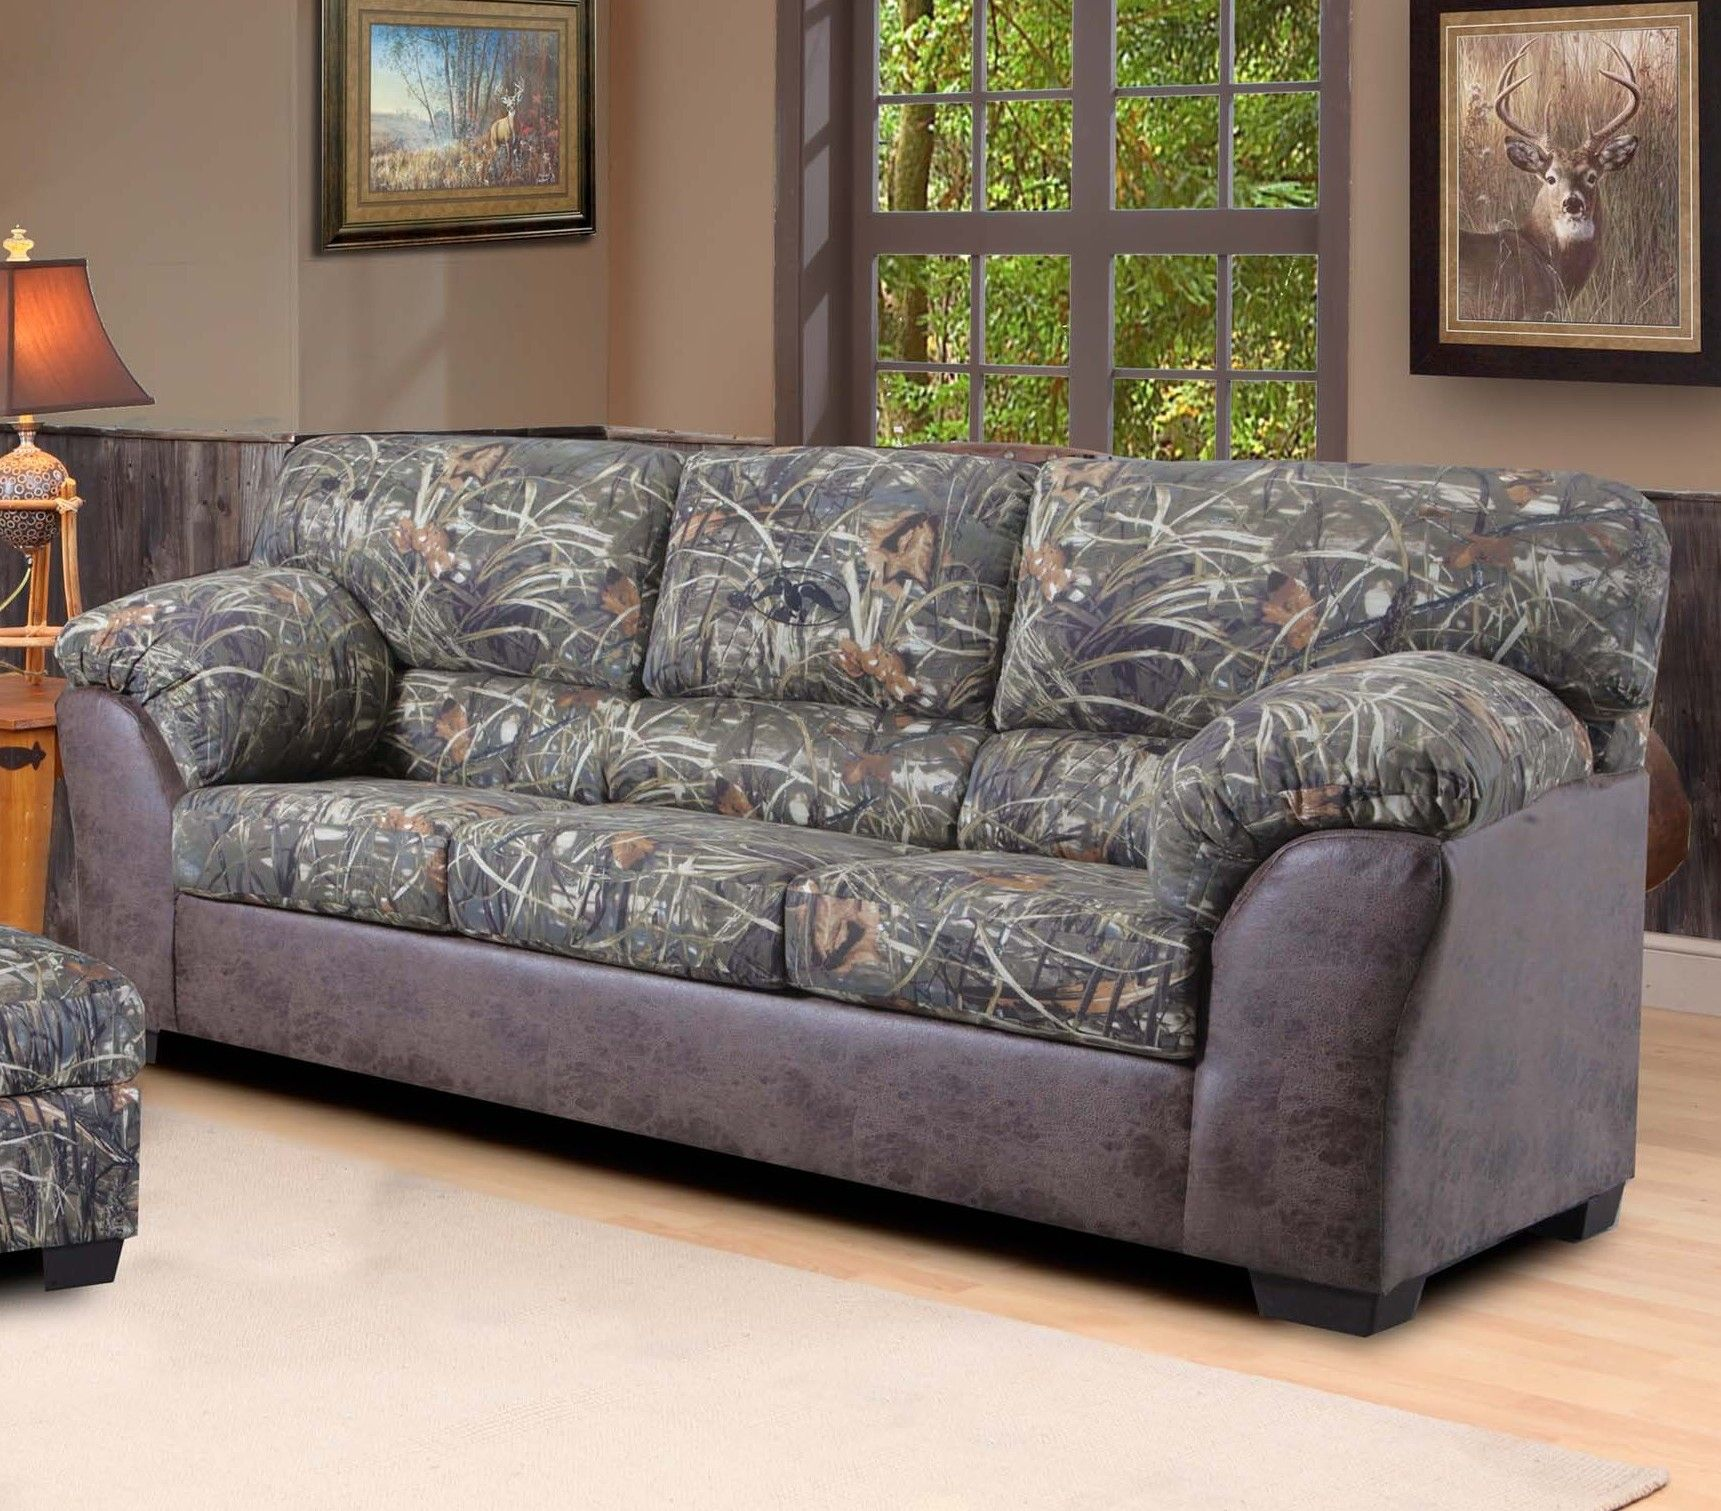 Duck mander Sofa in Camouflage Fabric The Duck mander